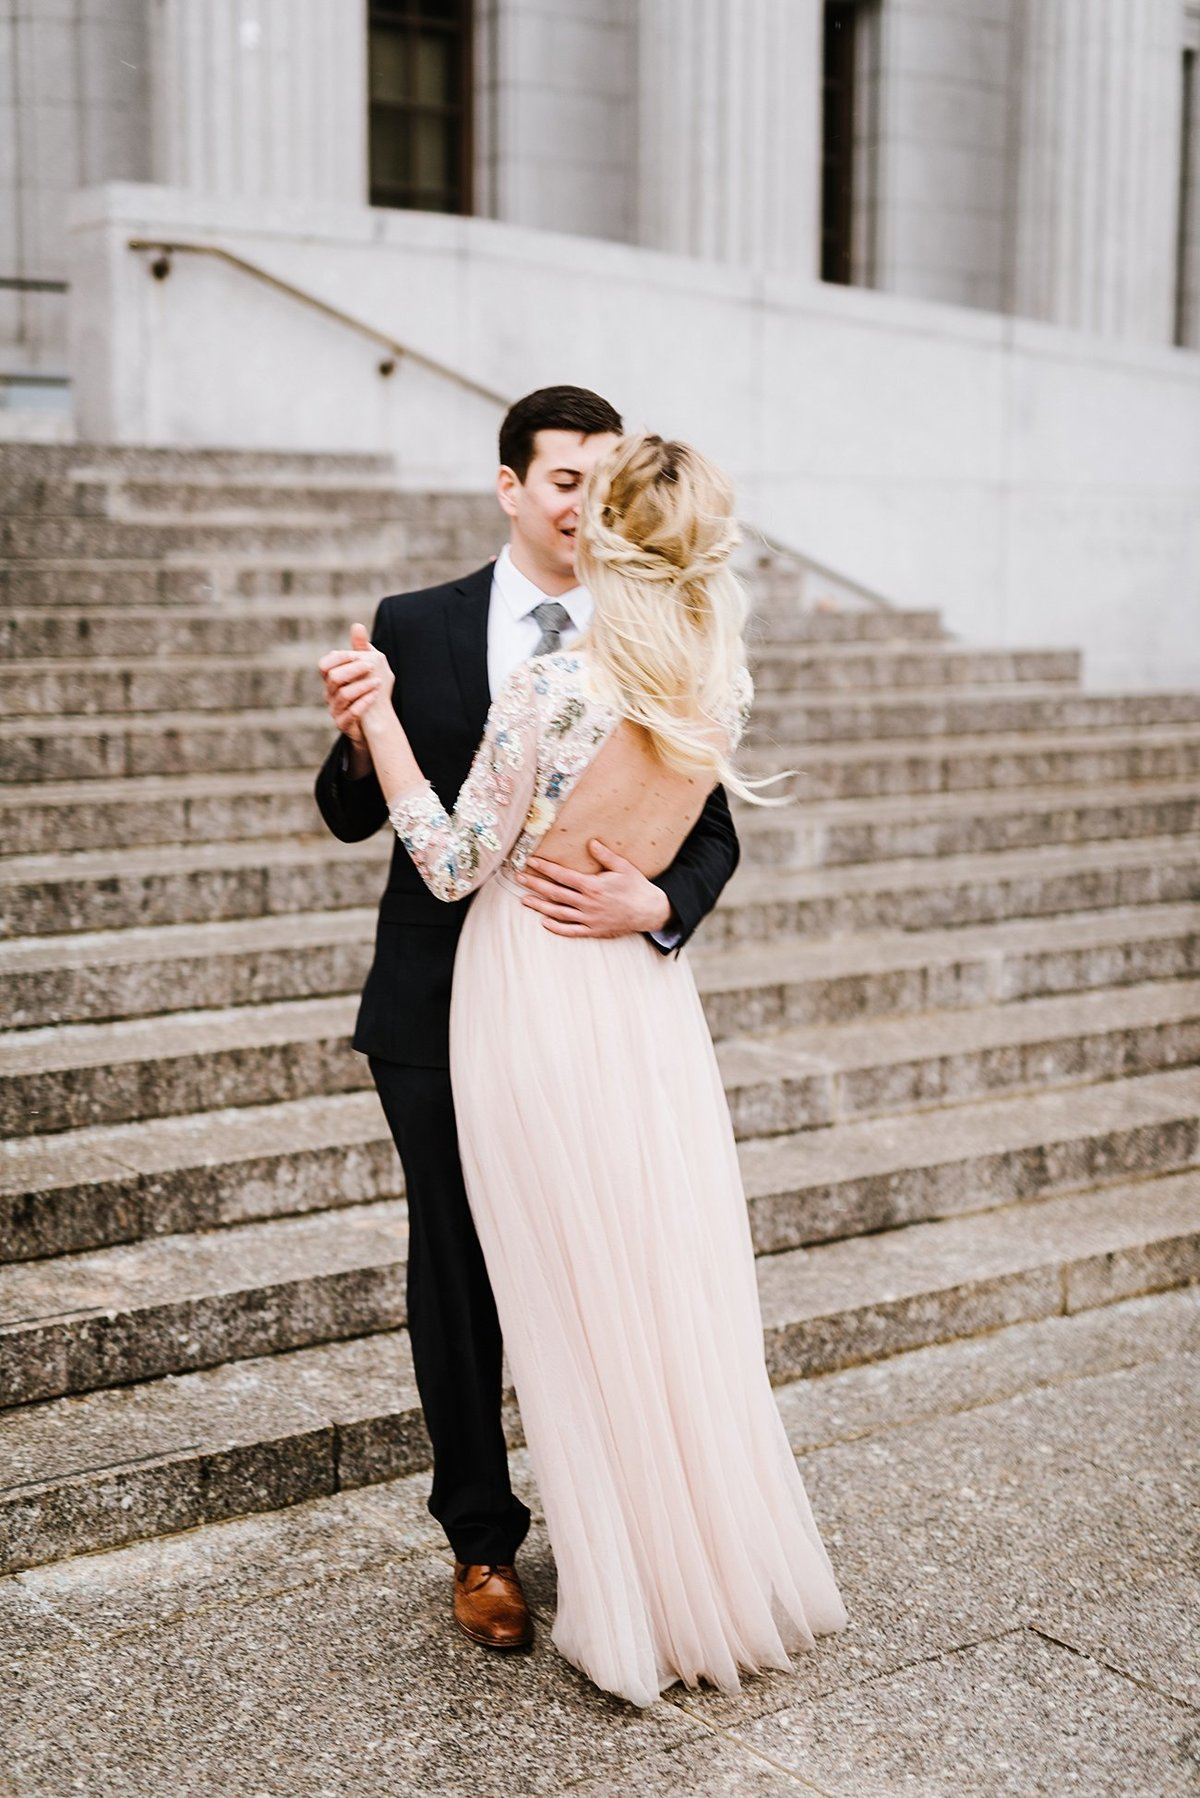 museum-of-fine-arts-proposal-engagement-boston-wedding-photographer-photo_0022